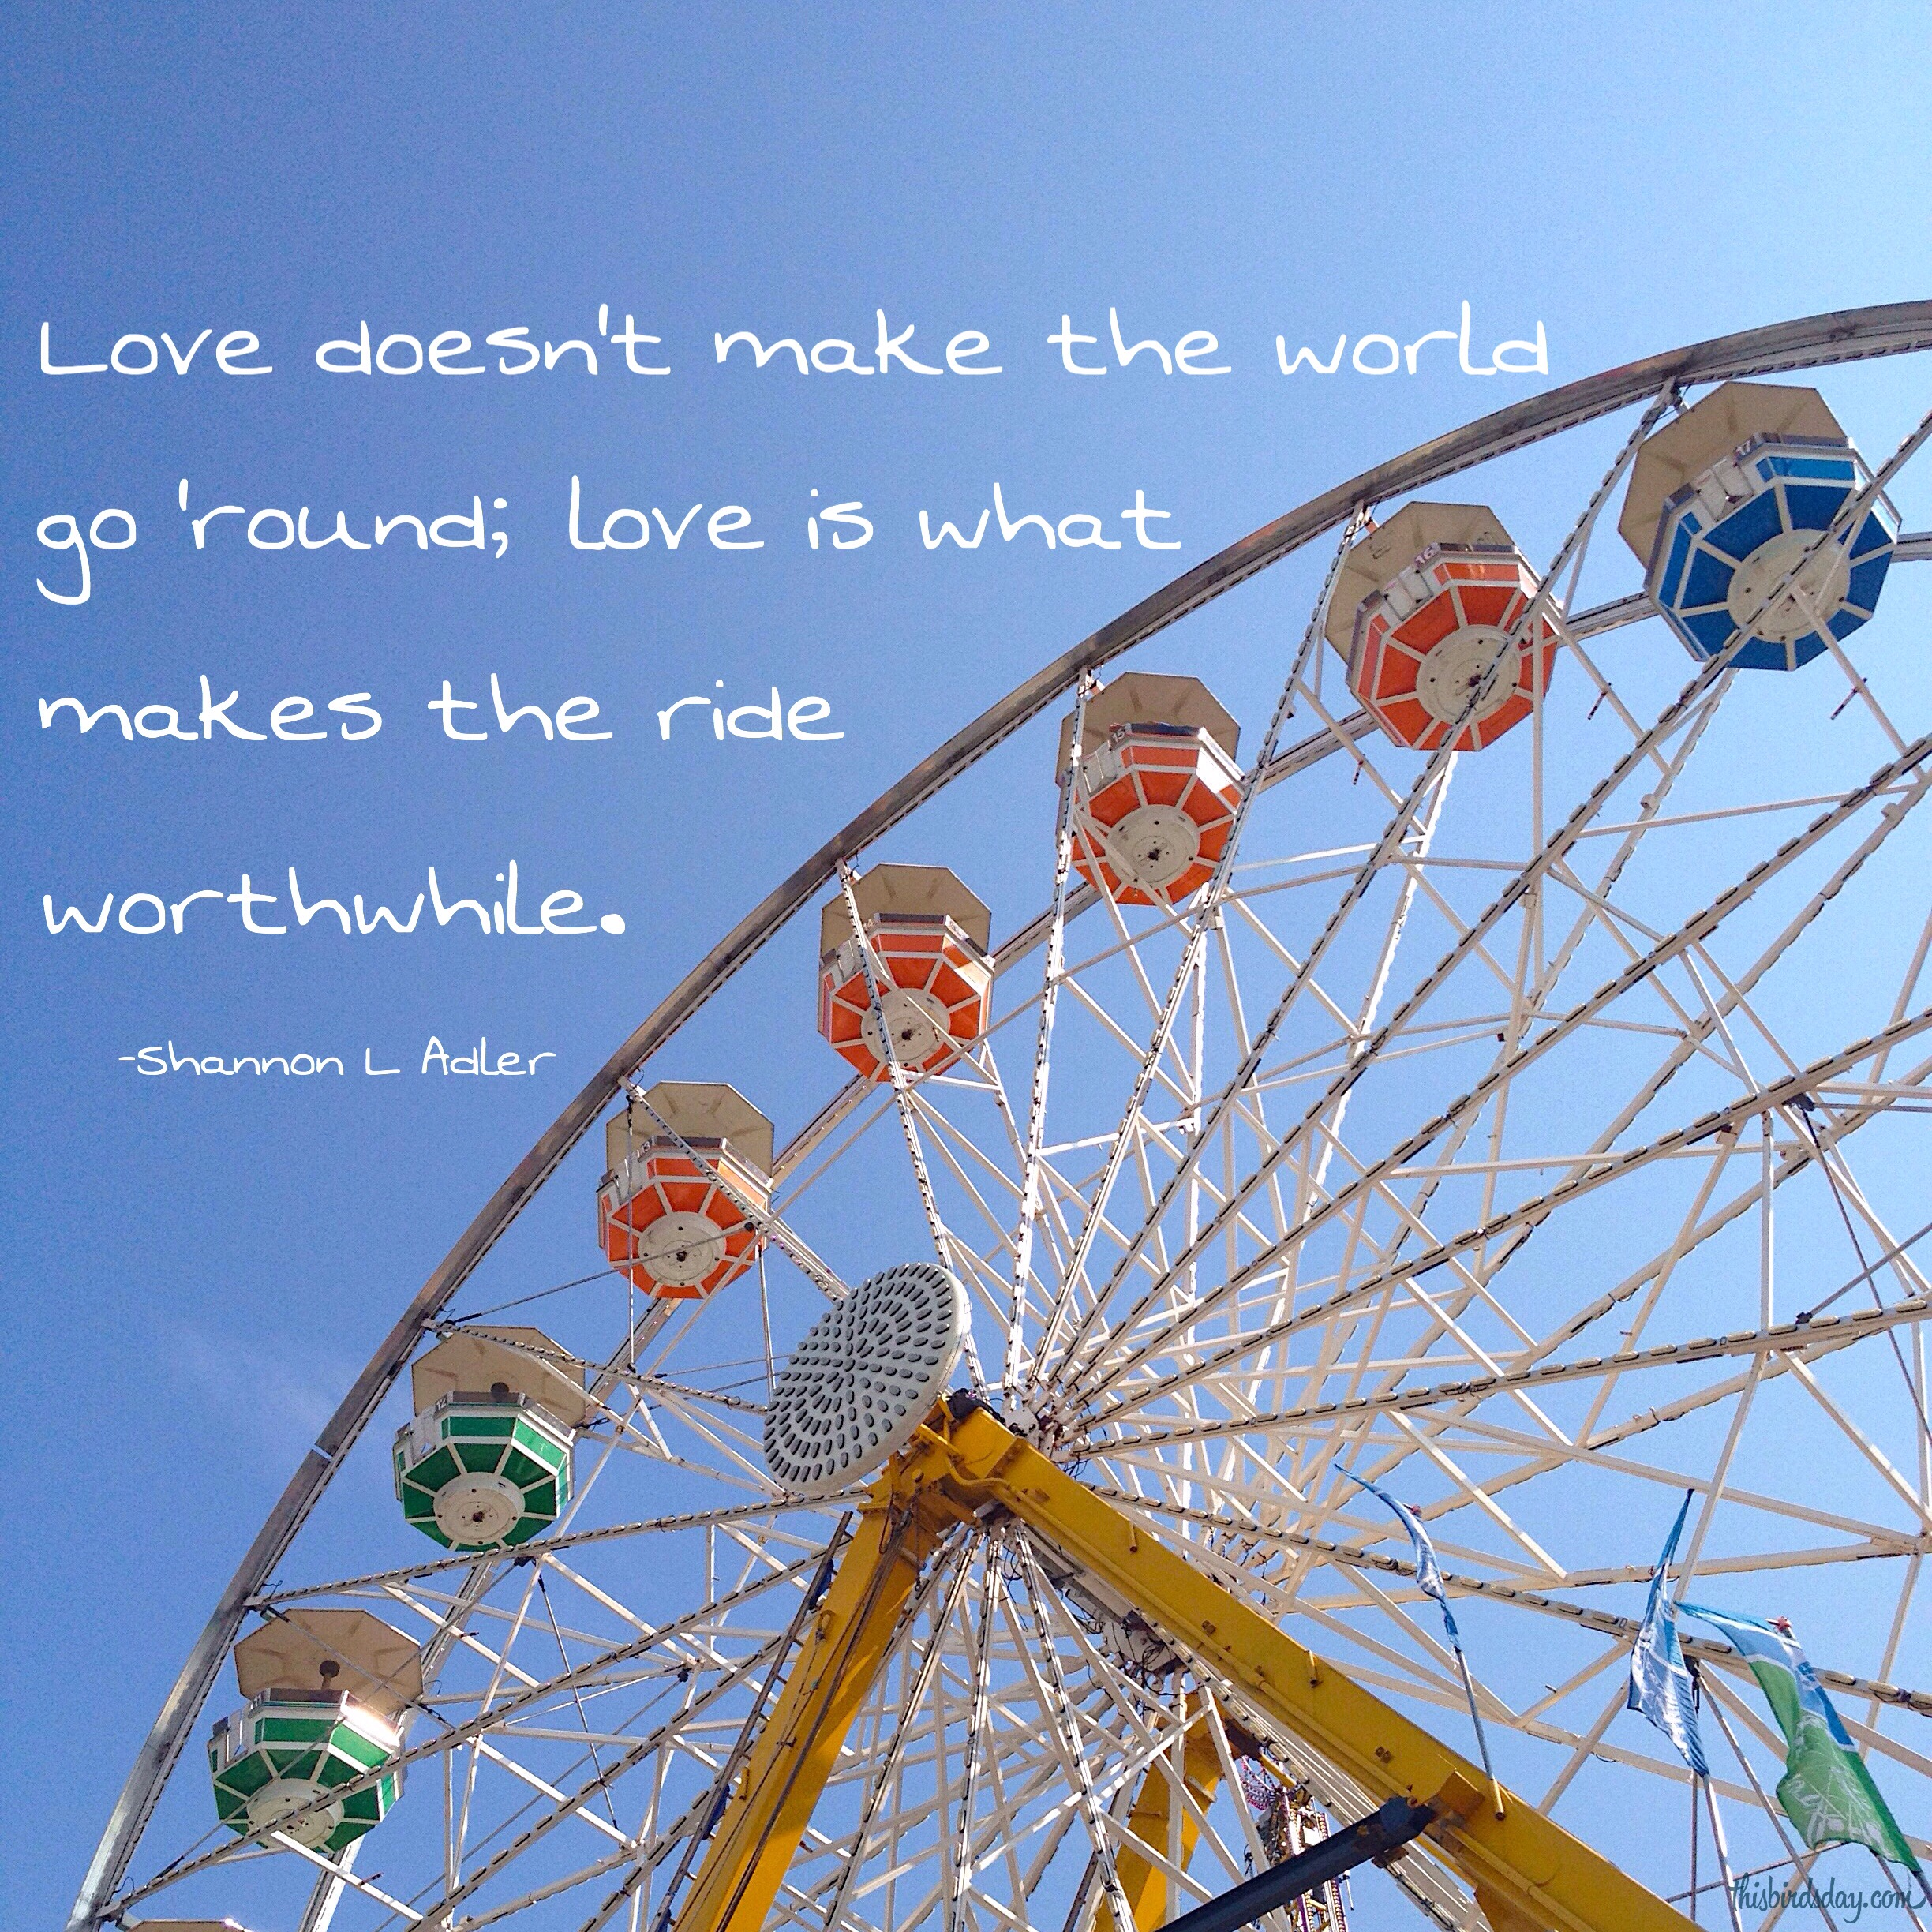 """""""Love doesn't make the world go 'round; love is what makes the ride worthwhile."""" Shannon L Adler. Photo copyright Sheri Landry"""